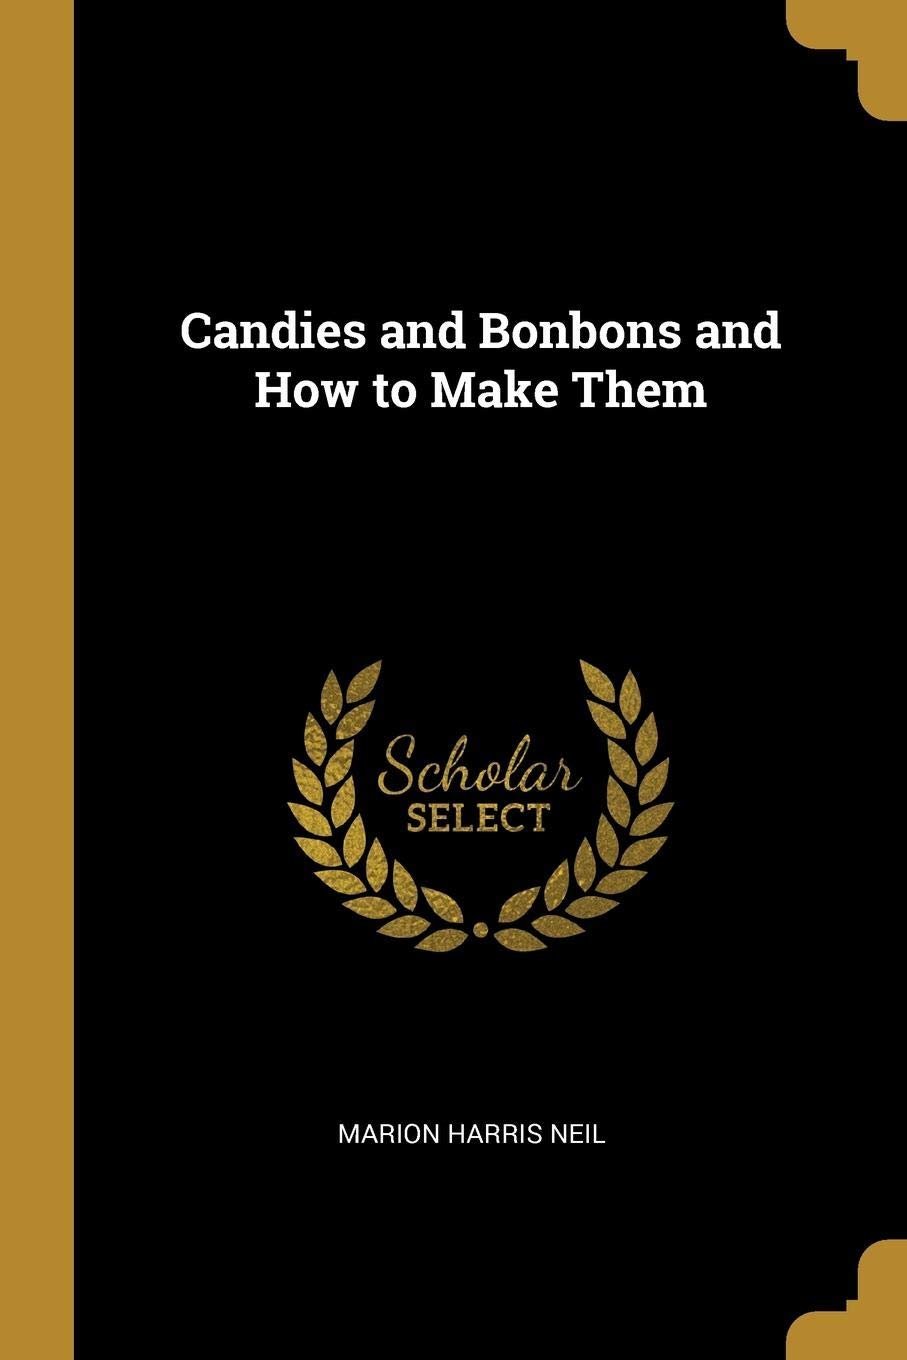 Candies and Bonbons and How to Make Them